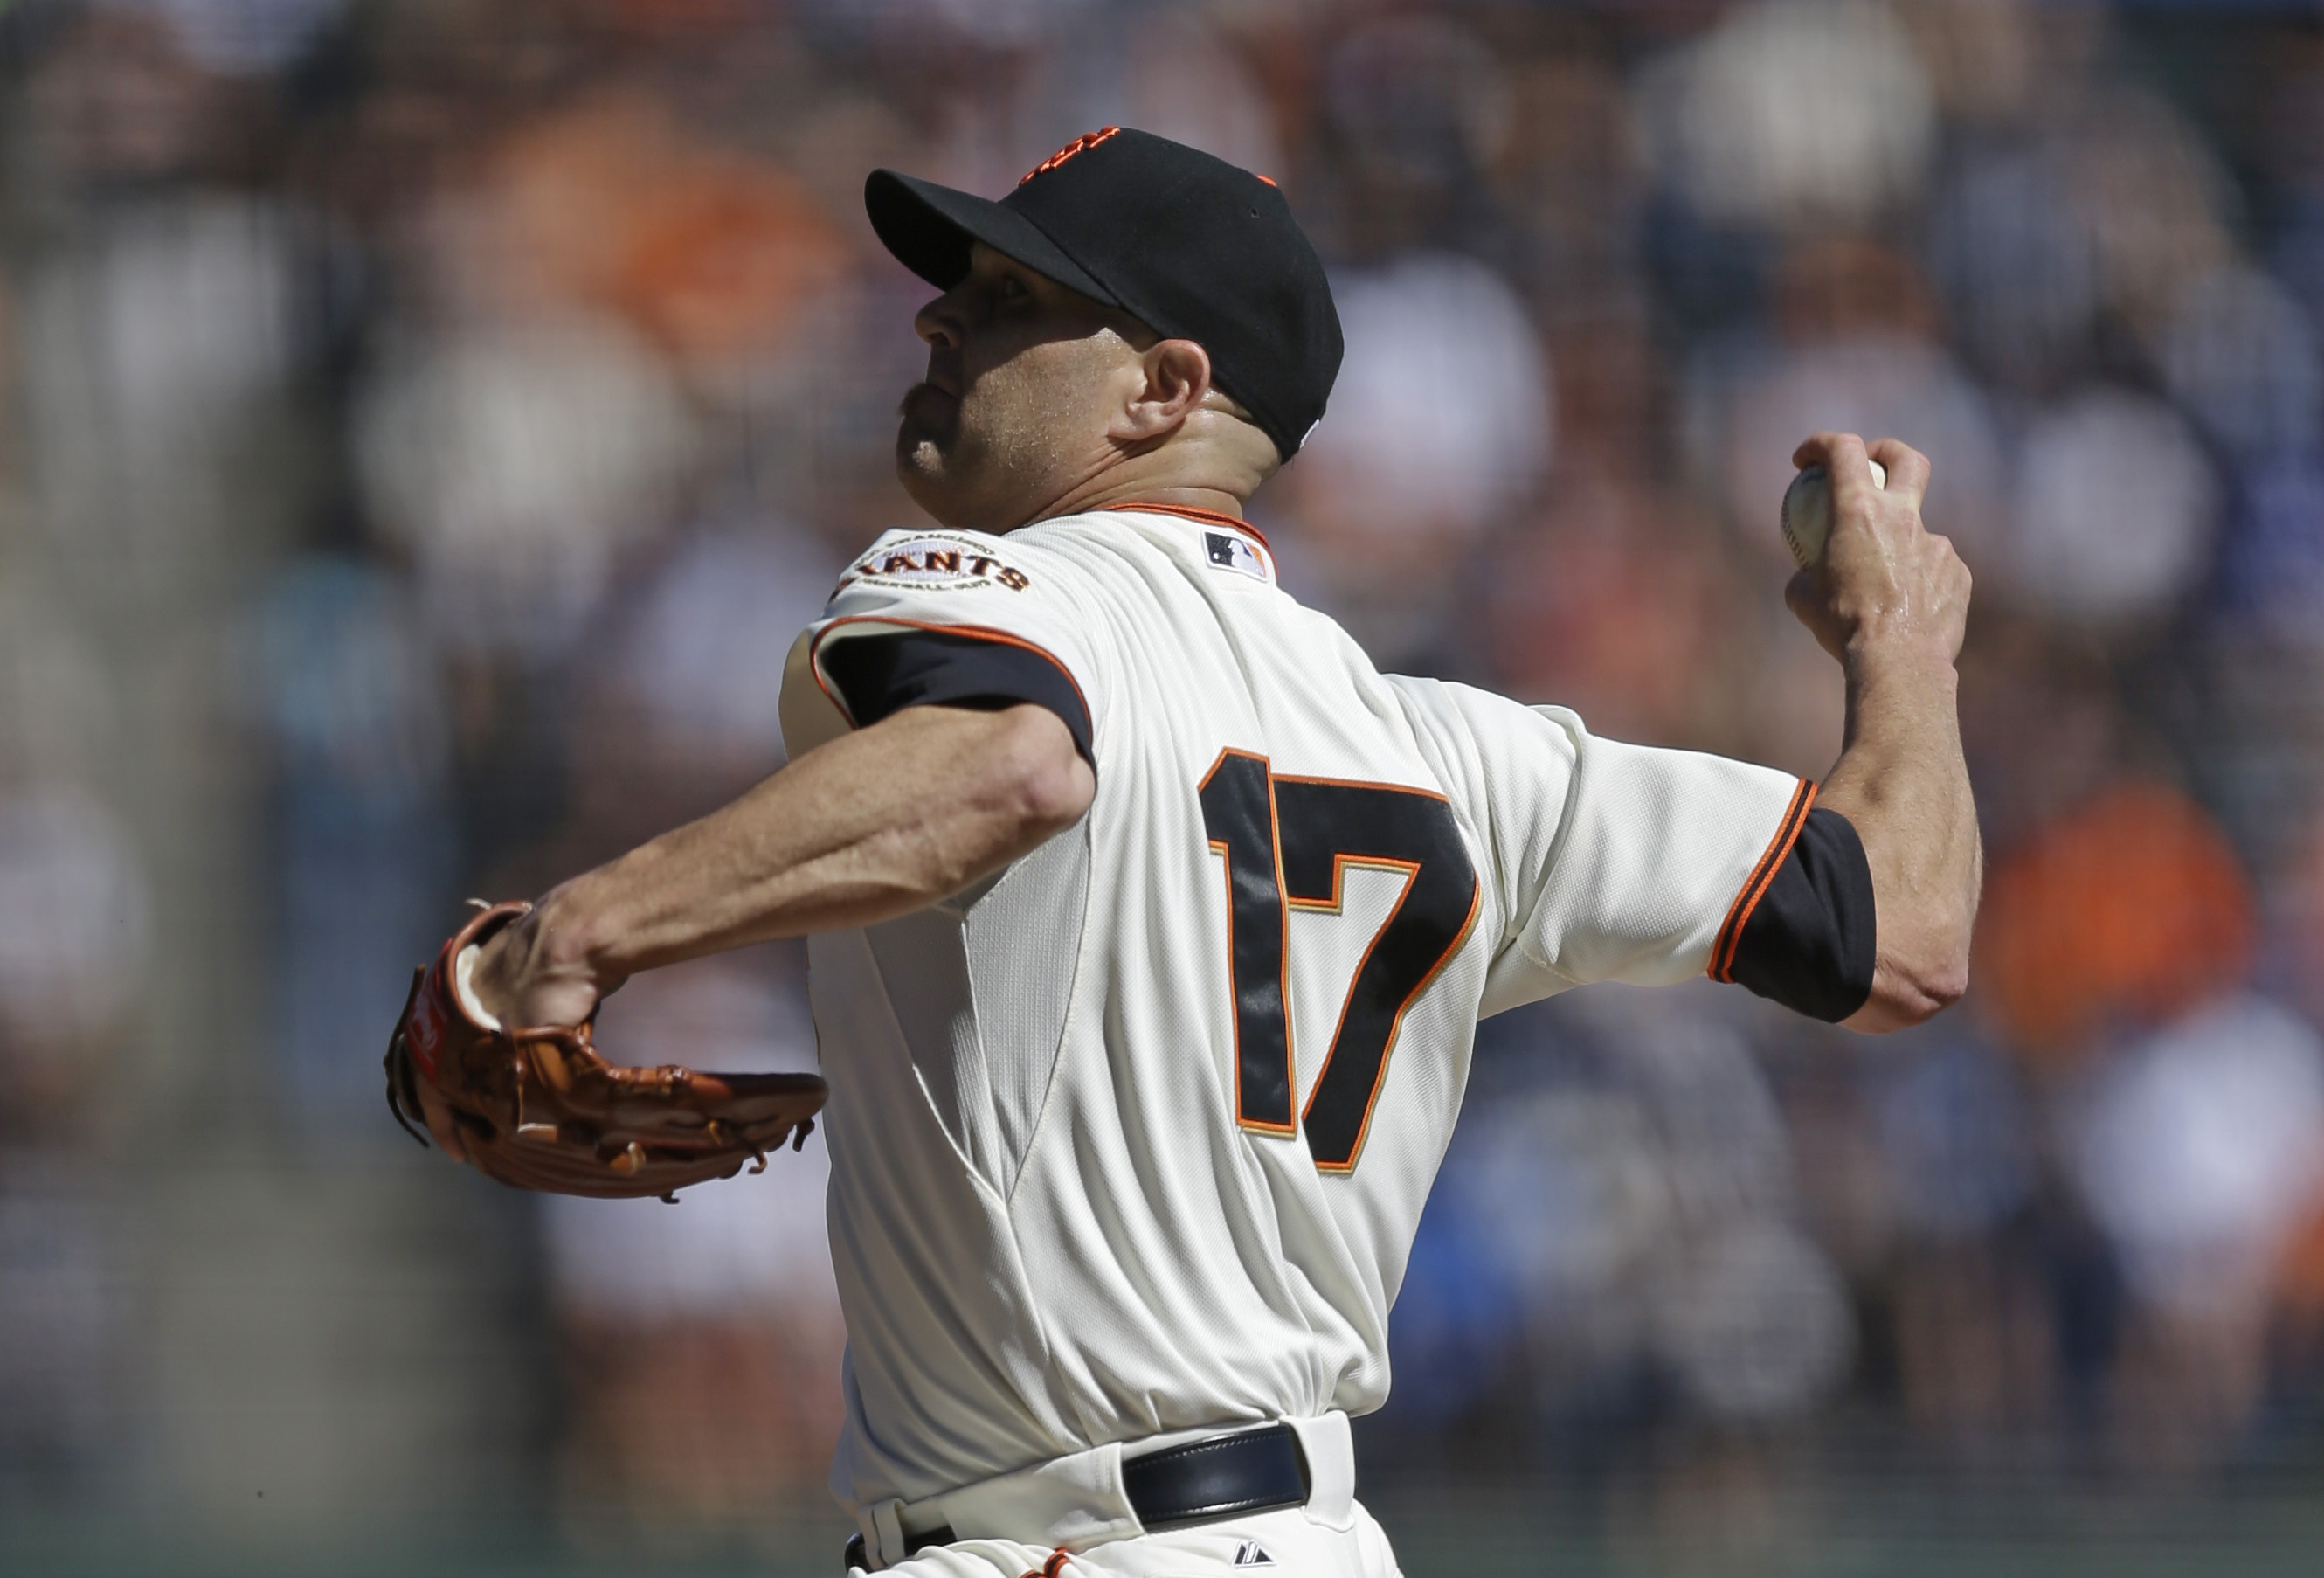 San Francisco Giants pitcher Tim Hudson works against the Los Angeles Dodgers in the first inning of a baseball game Thursday, Oct. 1, 2015, in San Francisco. (AP Photo/Ben Margot)